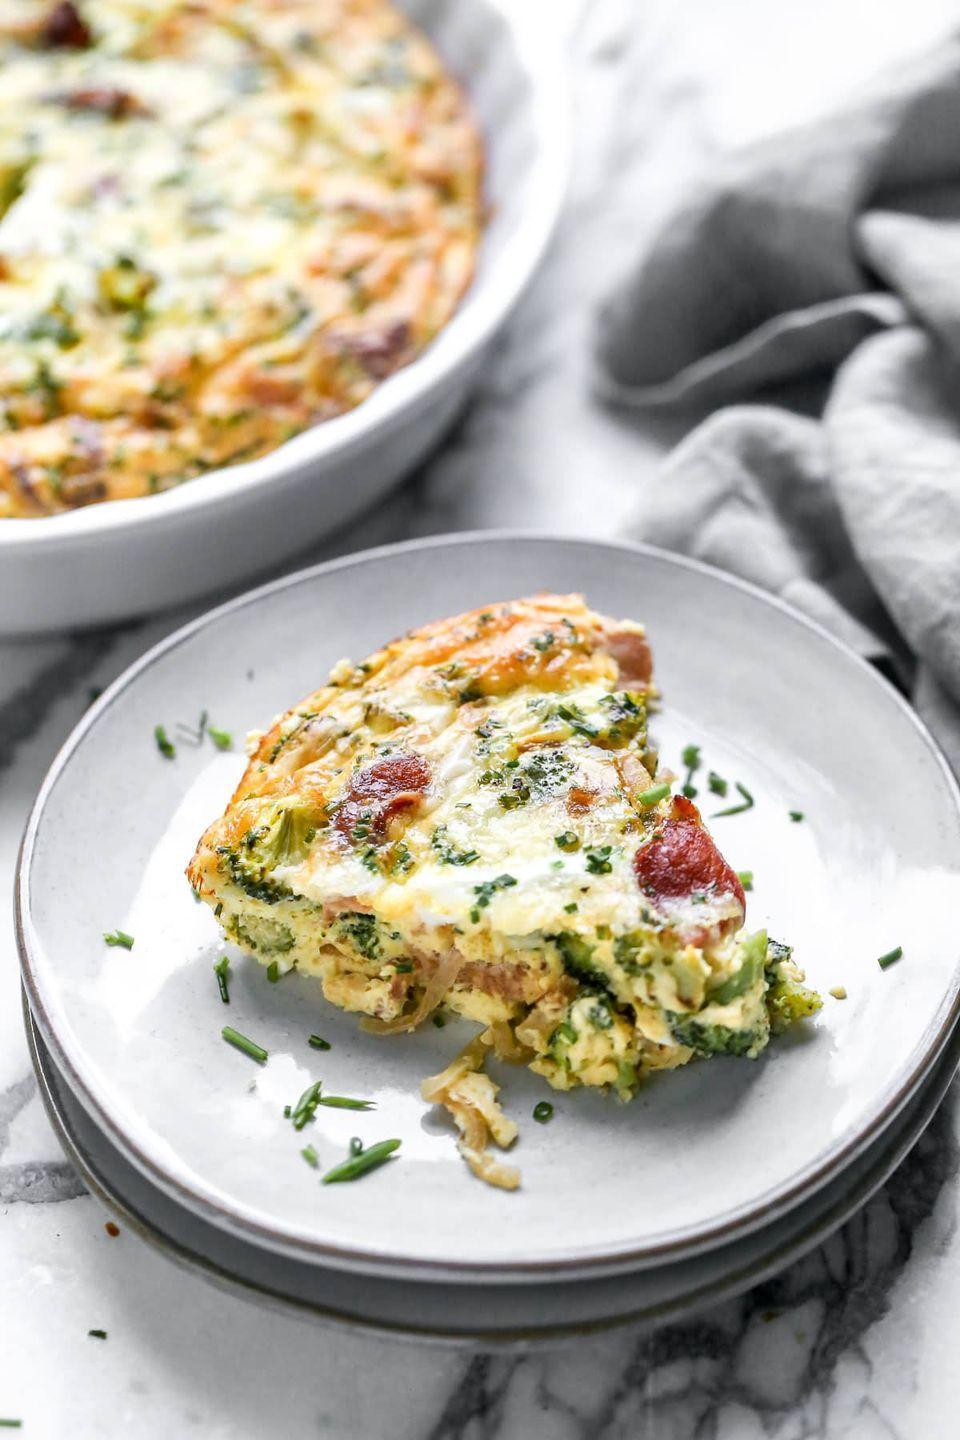 """<p>Quiche is a great way to elevate your weekend brunch, but if you're looking to cut back on carbs, the usual pastry crust might not be for you. Try this quiche instead—you won't miss the crust! <br></p><p><strong>Get the recipe at <a href=""""https://www.wellplated.com/crustless-quiche/"""" rel=""""nofollow noopener"""" target=""""_blank"""" data-ylk=""""slk:Well Plated"""" class=""""link rapid-noclick-resp"""">Well Plated</a>.</strong></p><p><strong><a class=""""link rapid-noclick-resp"""" href=""""https://go.redirectingat.com?id=74968X1596630&url=https%3A%2F%2Fwww.walmart.com%2Fsearch%2F%3Fquery%3Dpioneer%2Bwoman%2Bpie%2Bpan&sref=https%3A%2F%2Fwww.thepioneerwoman.com%2Ffood-cooking%2Fmeals-menus%2Fg34922086%2Fhealthy-breakfast-ideas%2F"""" rel=""""nofollow noopener"""" target=""""_blank"""" data-ylk=""""slk:SHOP PIE PANS"""">SHOP PIE PANS</a><br></strong></p>"""